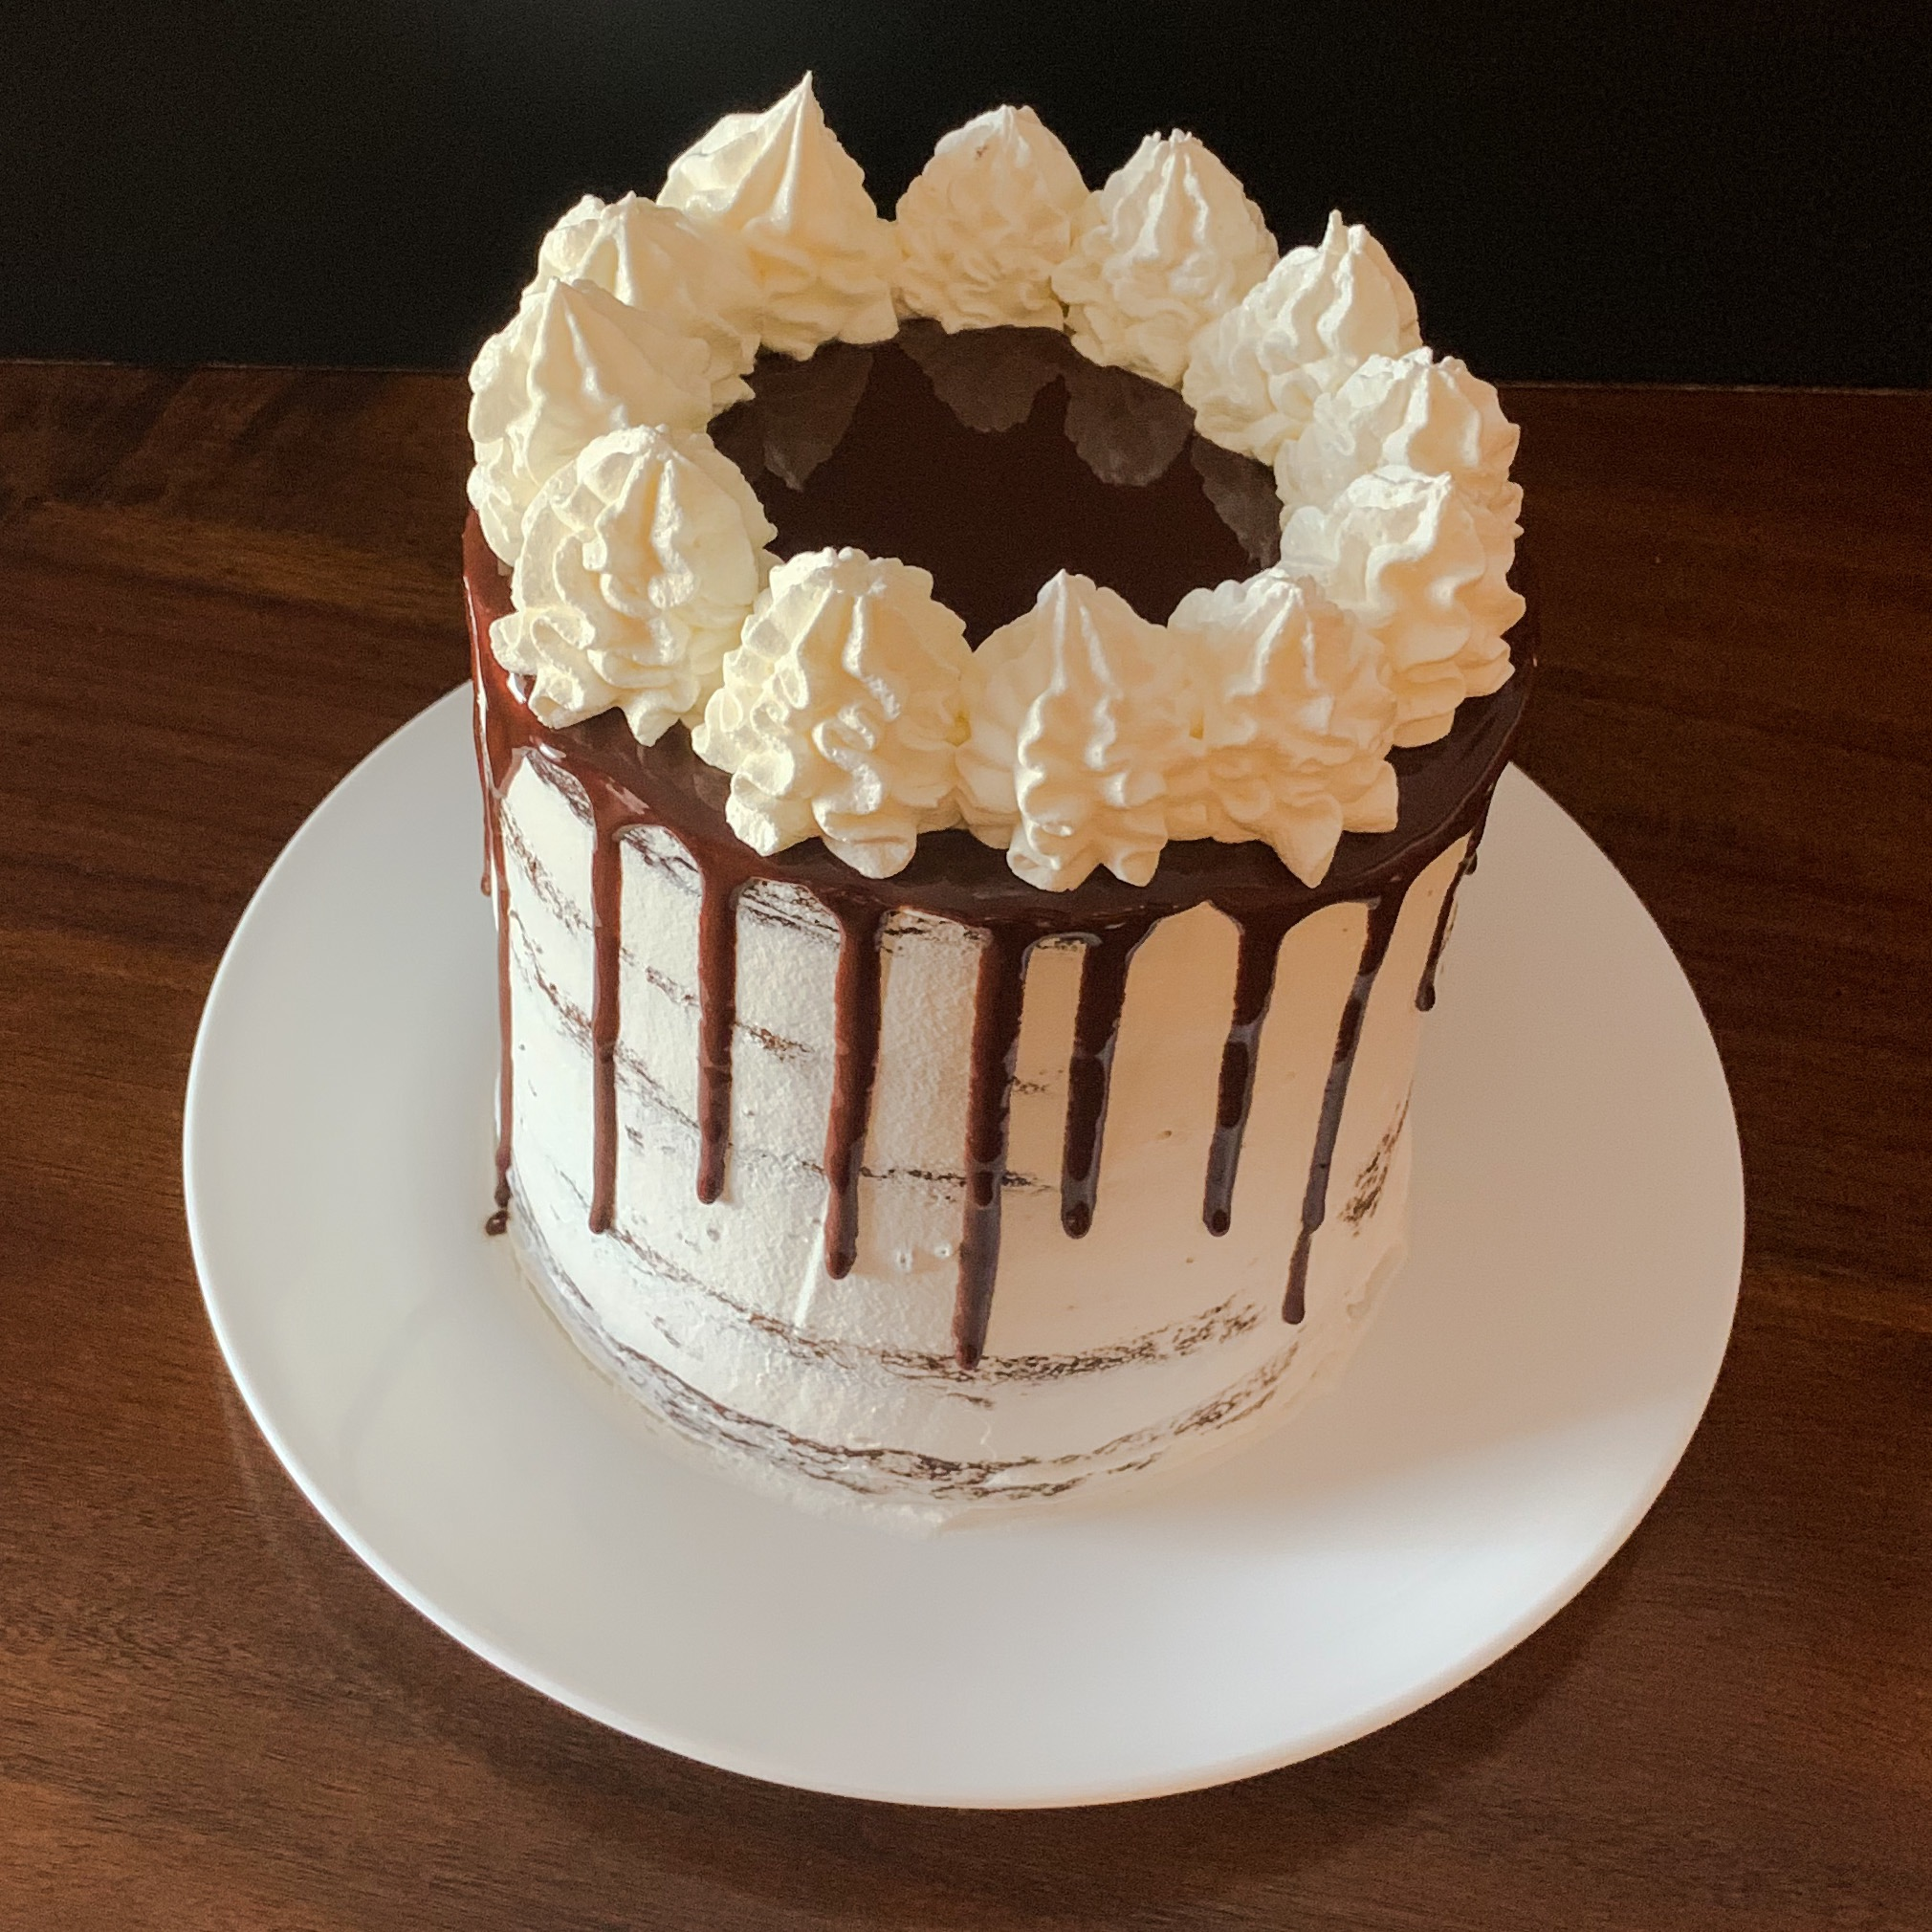 Fudge Drip Chocoalte Cake with Whipped Topping